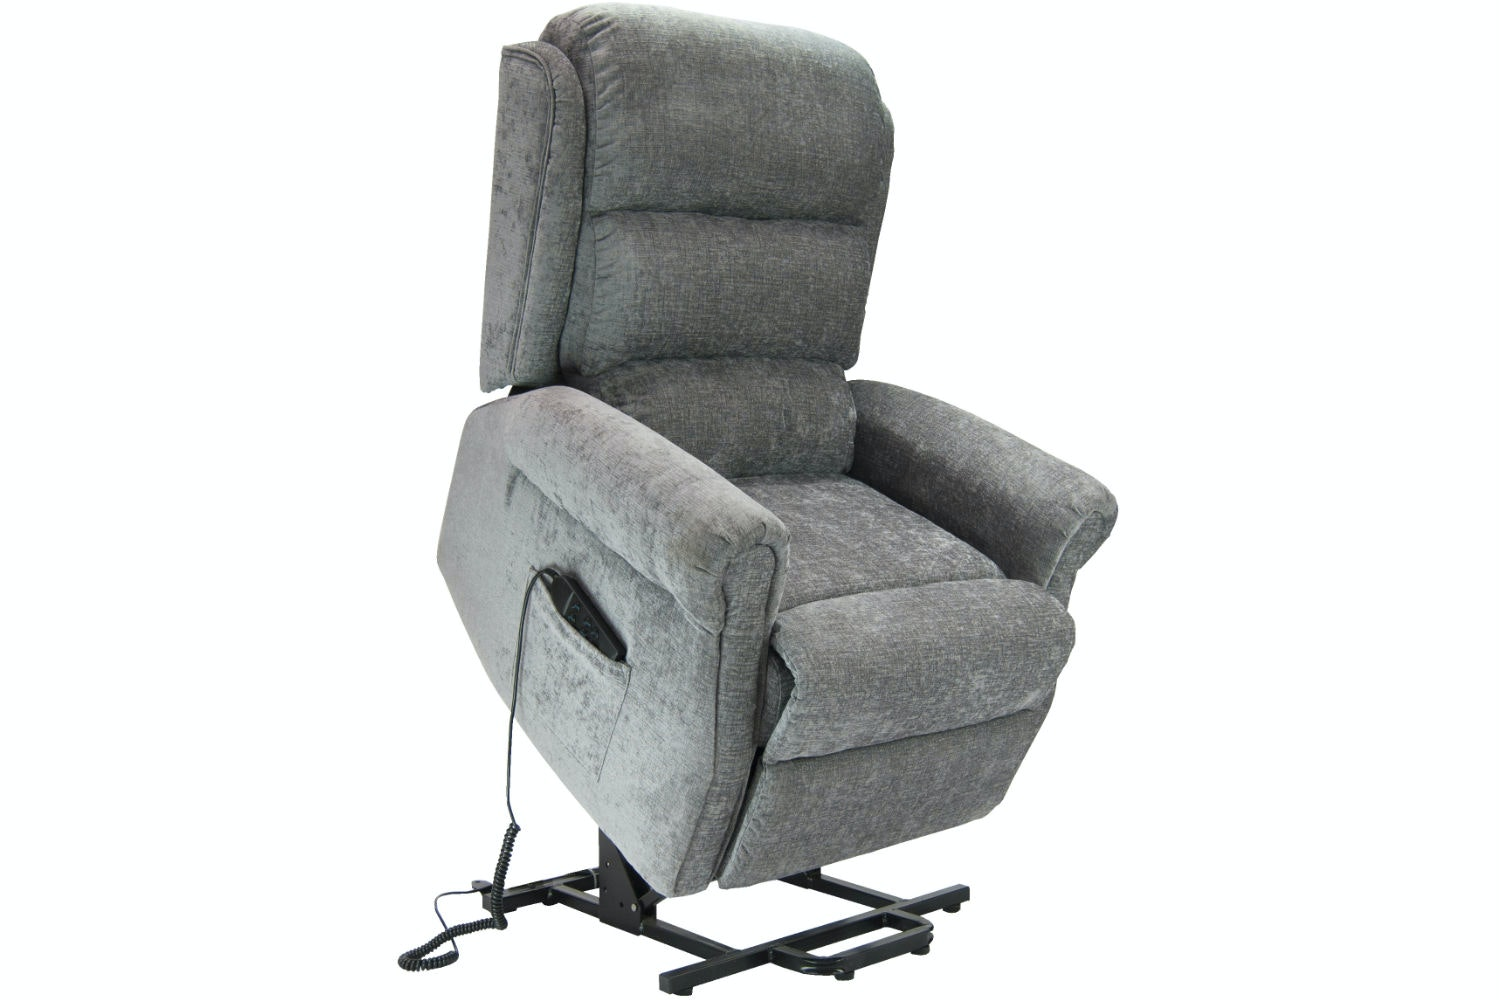 Hudson Recliner Chair | Steel